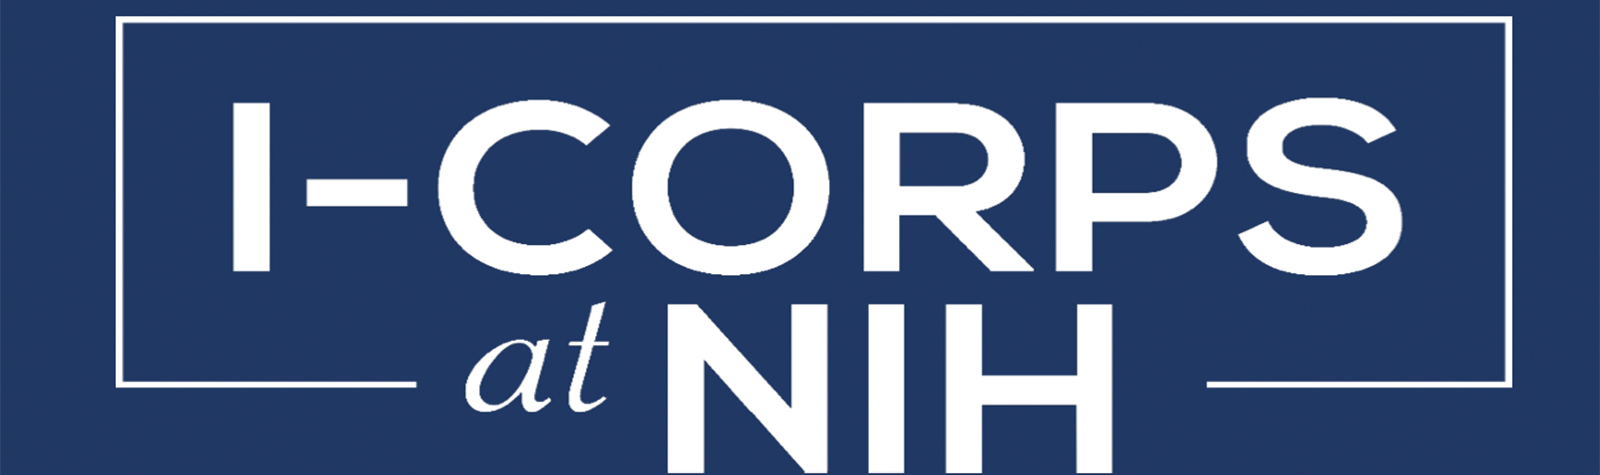 Primordial Genetics Receives $55K I-Corps™ at NIH Grant for Enzymatic DNA Synthesis Market Survey